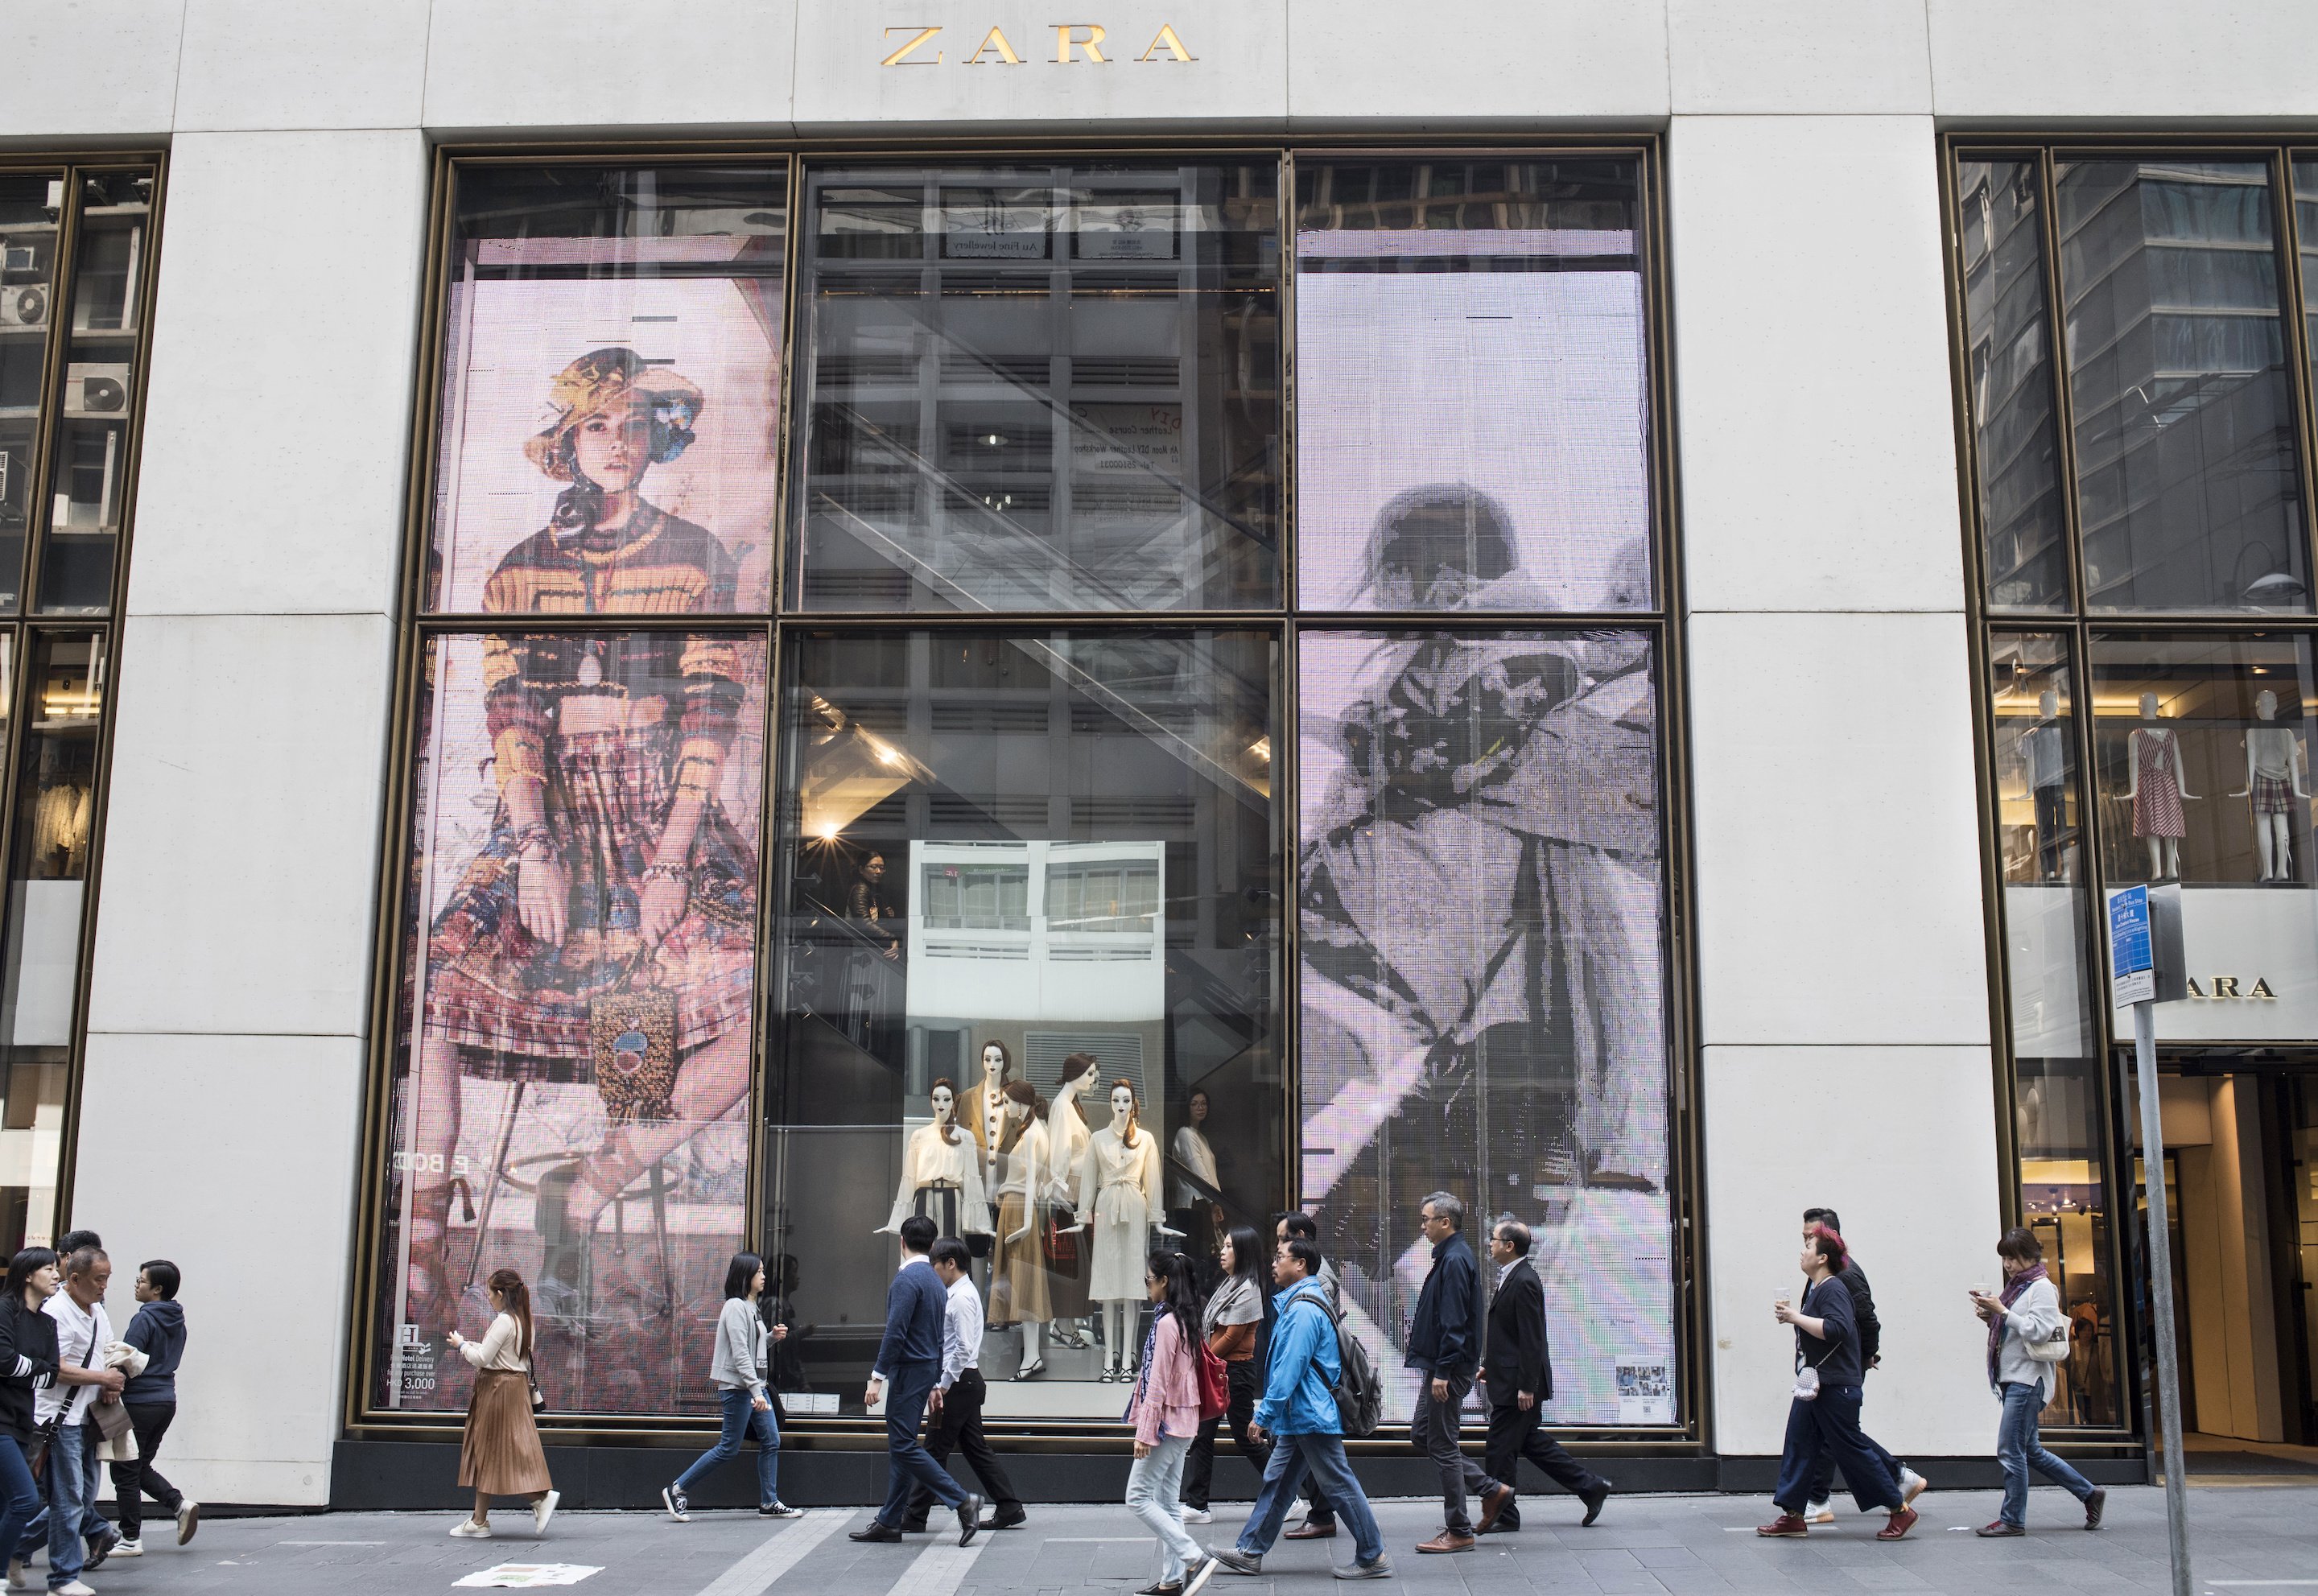 Spanish multinational retailer Zara's store in Hong Kong's Queen's Road, Central district.